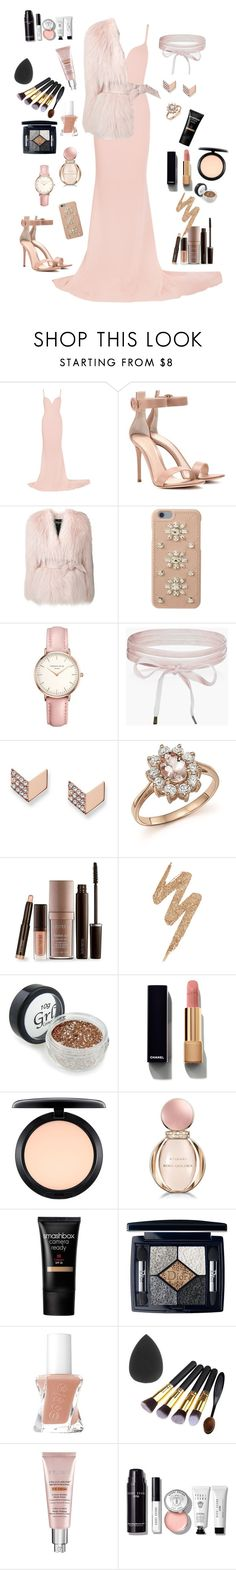 """""""e e5 ce"""" by alexiouq ❤ liked on Polyvore featuring STELLA McCARTNEY, Gianvito Rossi, Balmain, MICHAEL Michael Kors, Topshop, Boohoo, FOSSIL, Bloomingdale's, Laura Mercier and Urban Decay"""